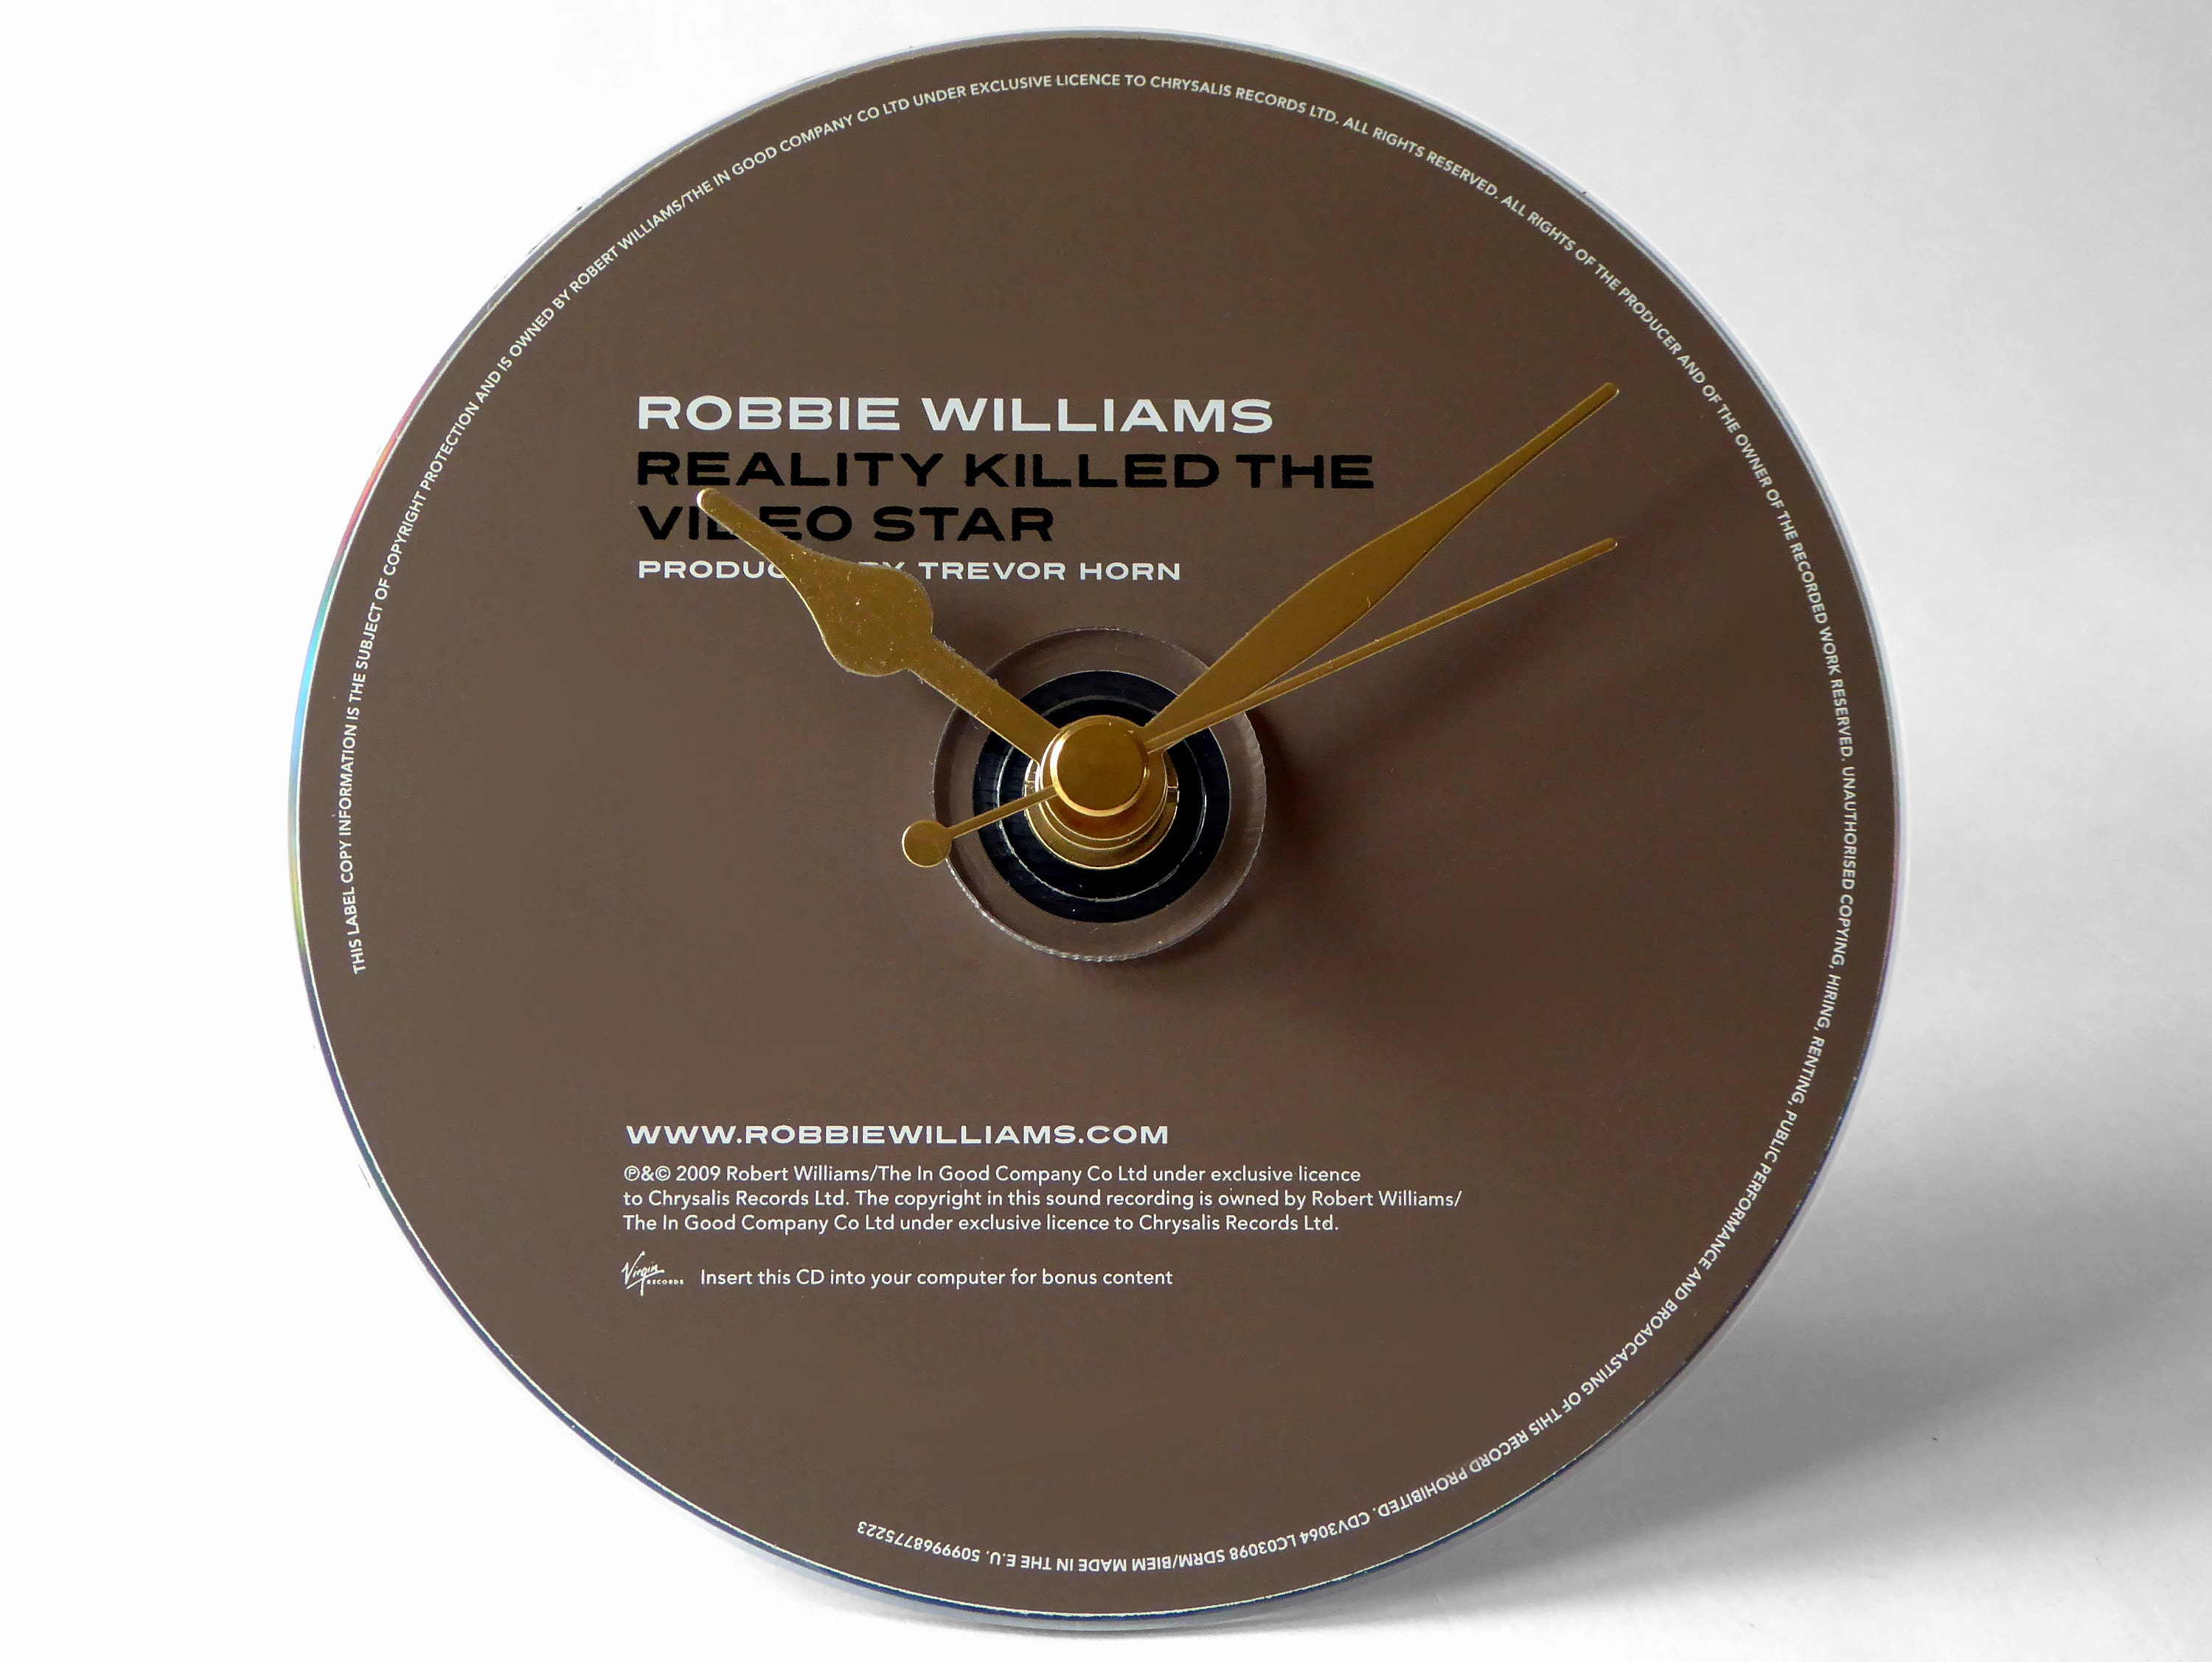 Robbie Williams Reality Killed The Video Star CD Clock and Keyring Gift Set